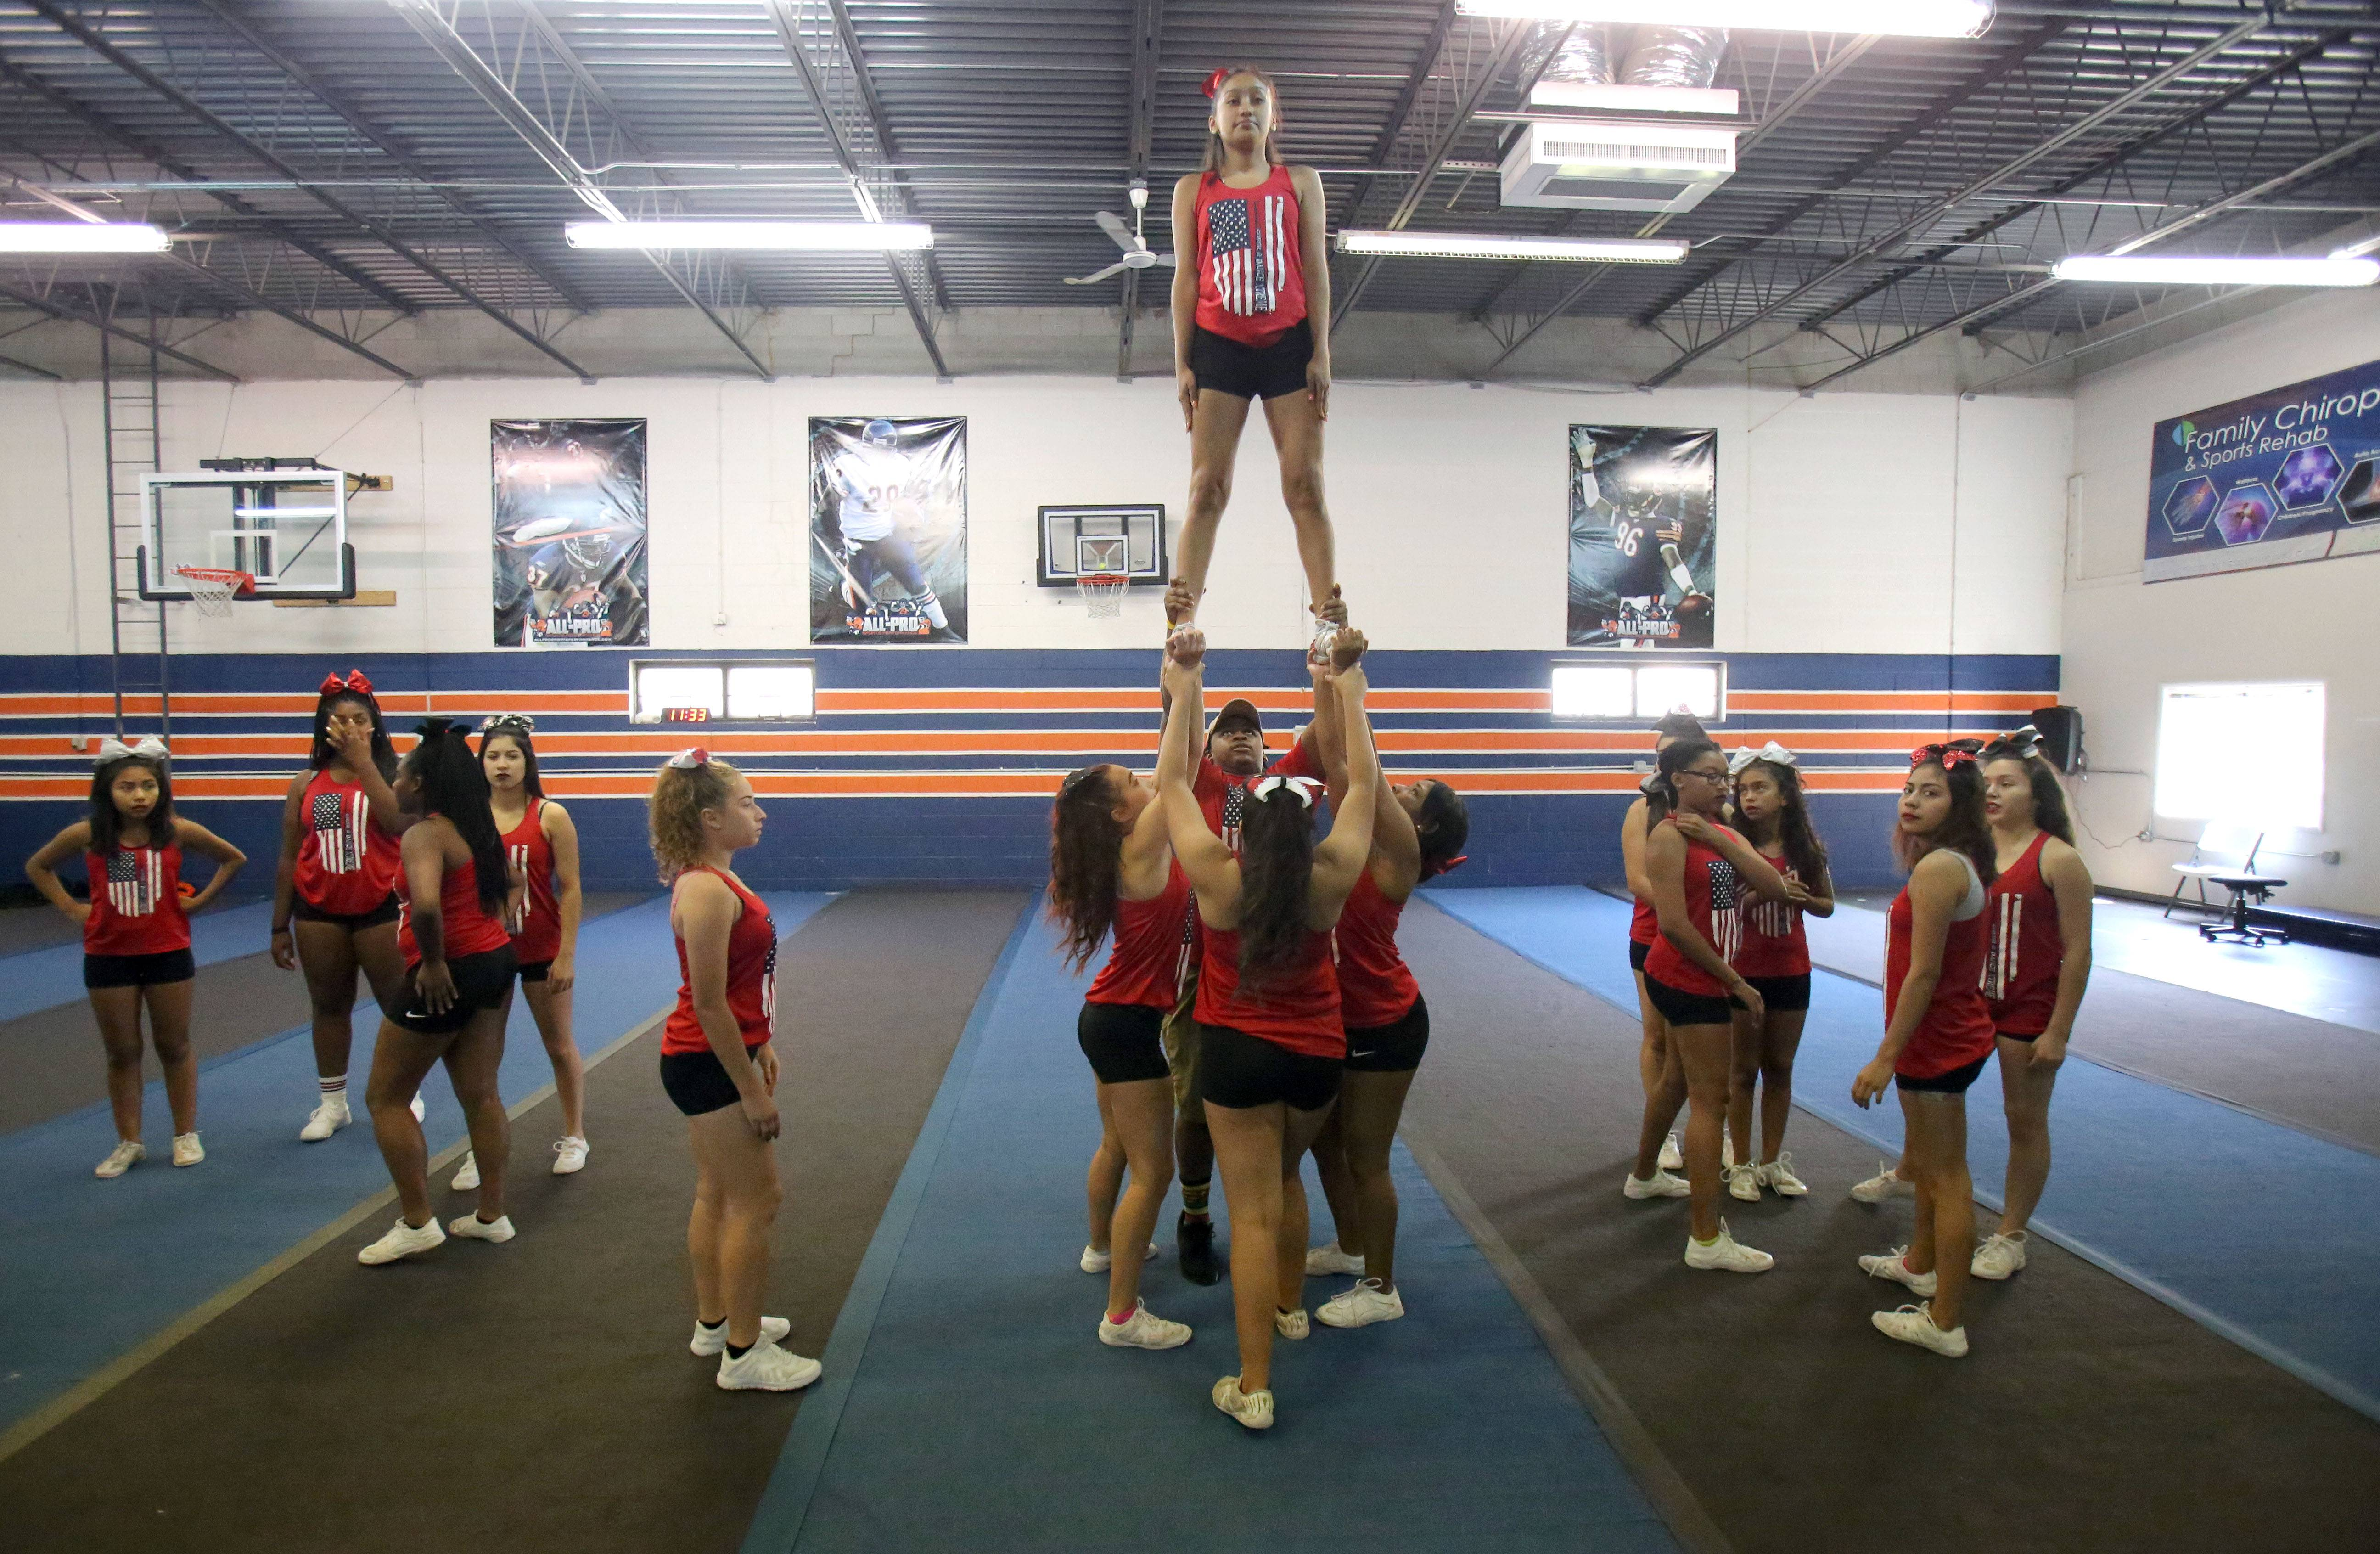 The Cheer & Dance Xtreme senior team practices in Gurnee. The team has been invited to perform in the annual Macy's Thanksgiving Day Parade in New York City, but the trip is going to be expensive, and many of the teens are struggling to come up with the necessary cash.